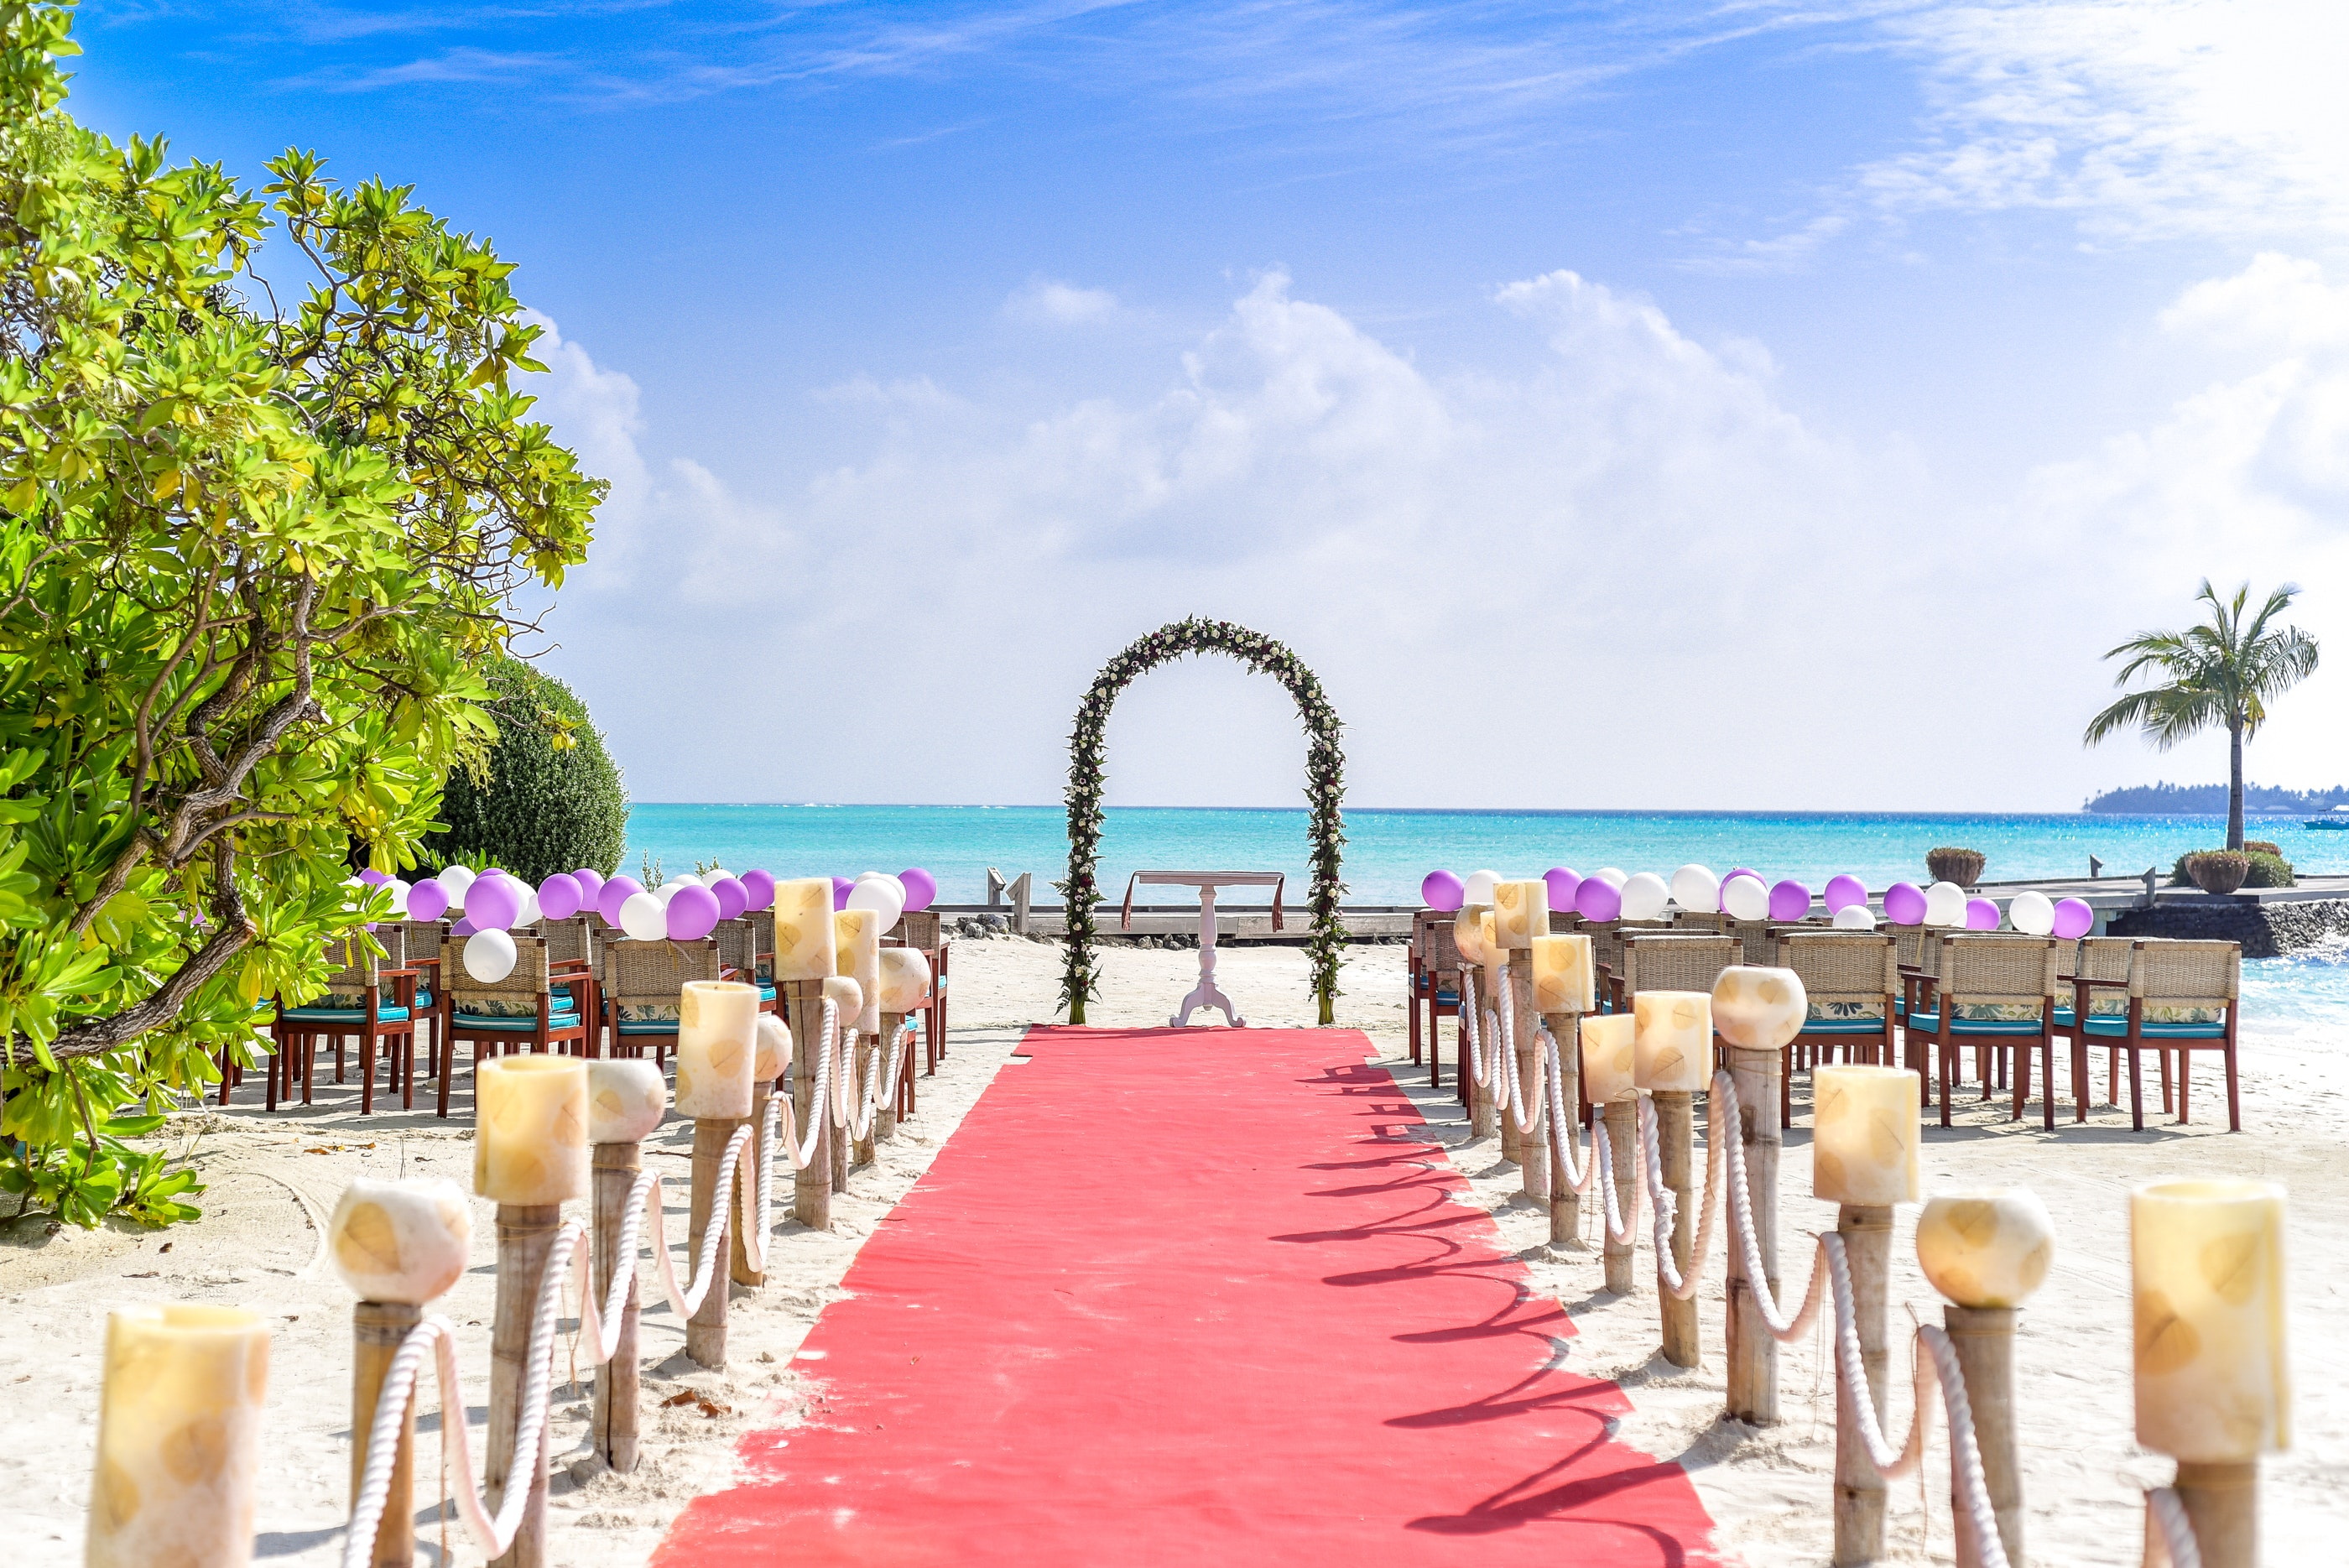 Beach wedding event under white clouds and clear sky during daytime photo